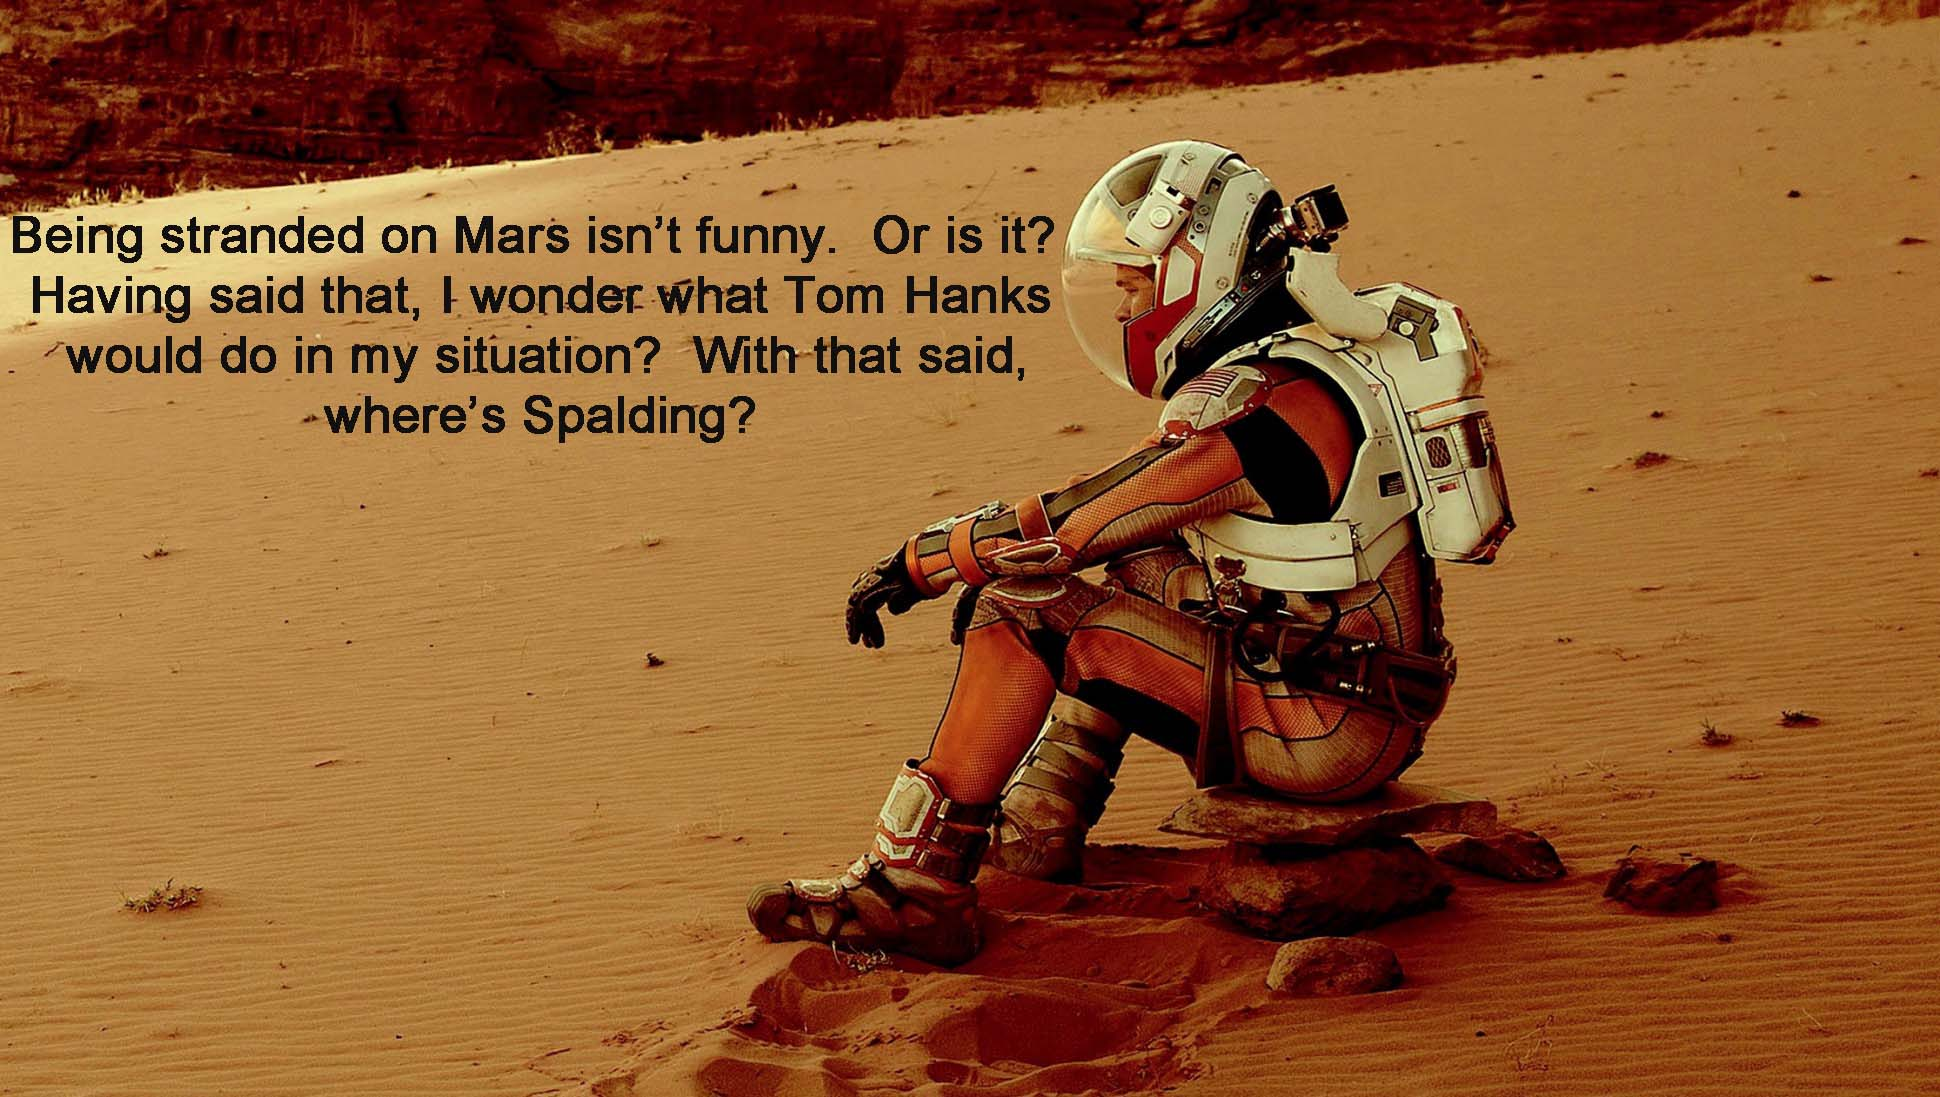 The-Martian-Matt-Damon_edited-1